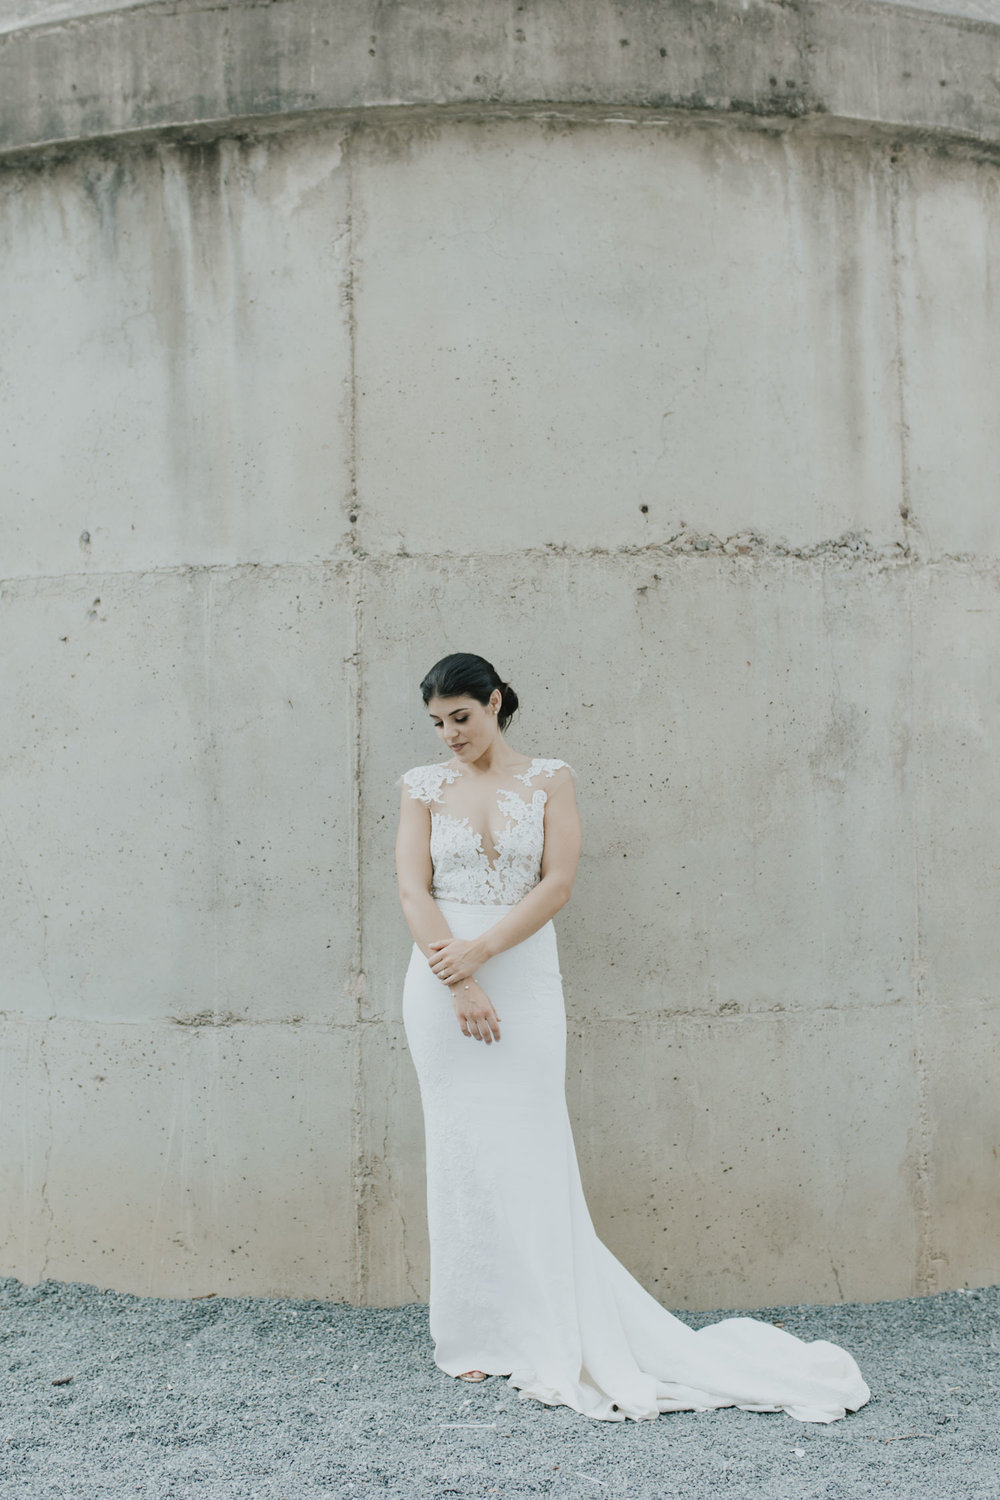 Fitters' Workshop Wedding Canberra - bride and groom  Portraits by Jenny Wu Straight No Chaser Photography